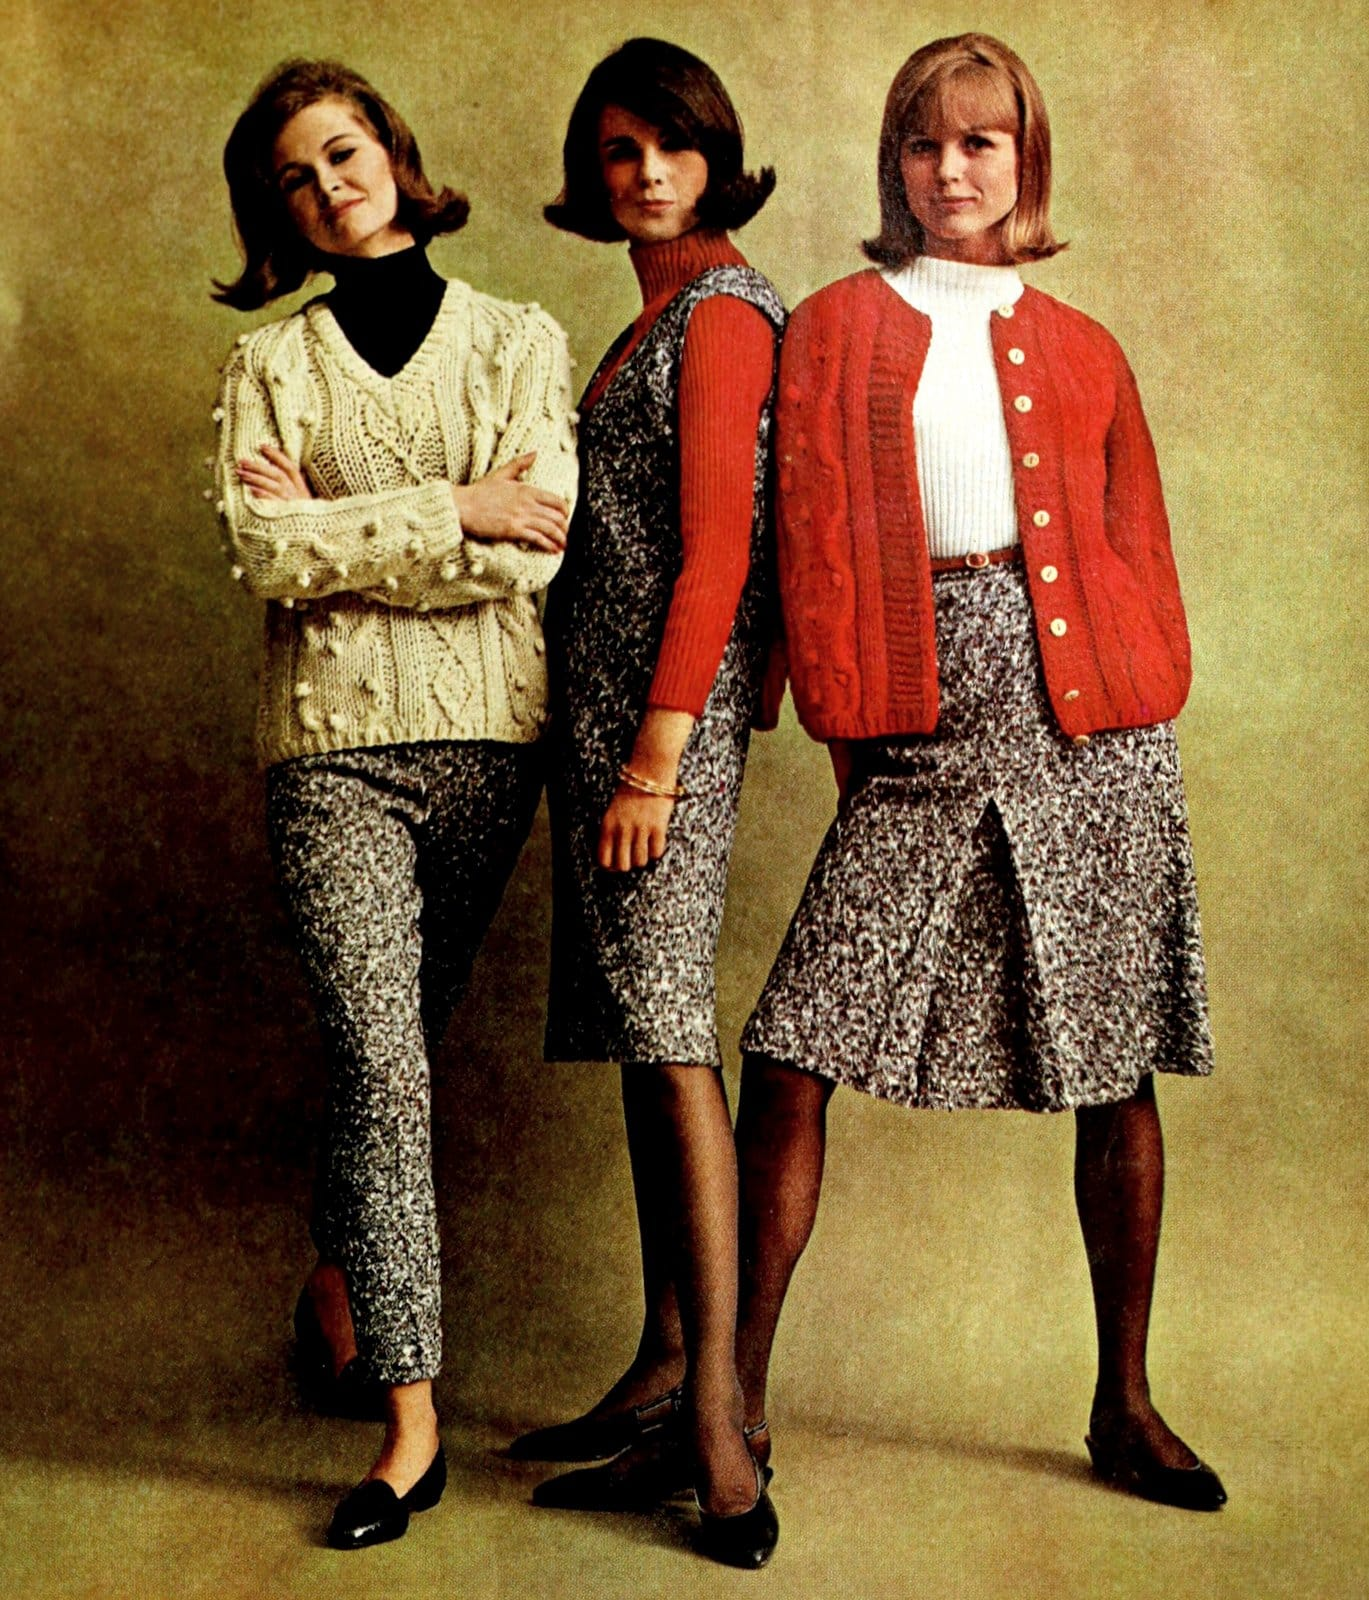 Vintage sweater styles with skirts and pants (1964)